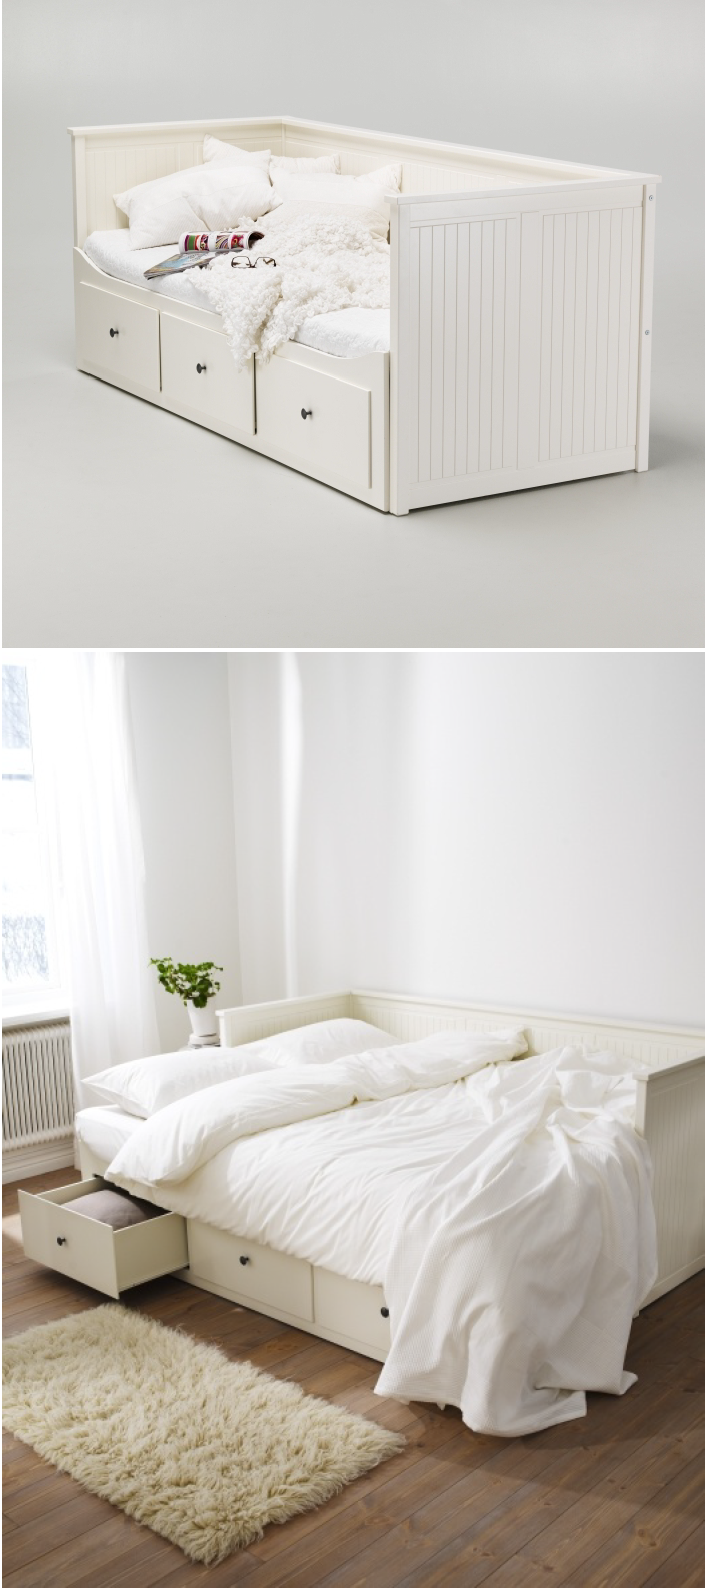 Ikea hemnes schminktisch  Create a welcoming bedroom away from home for guests with the ...